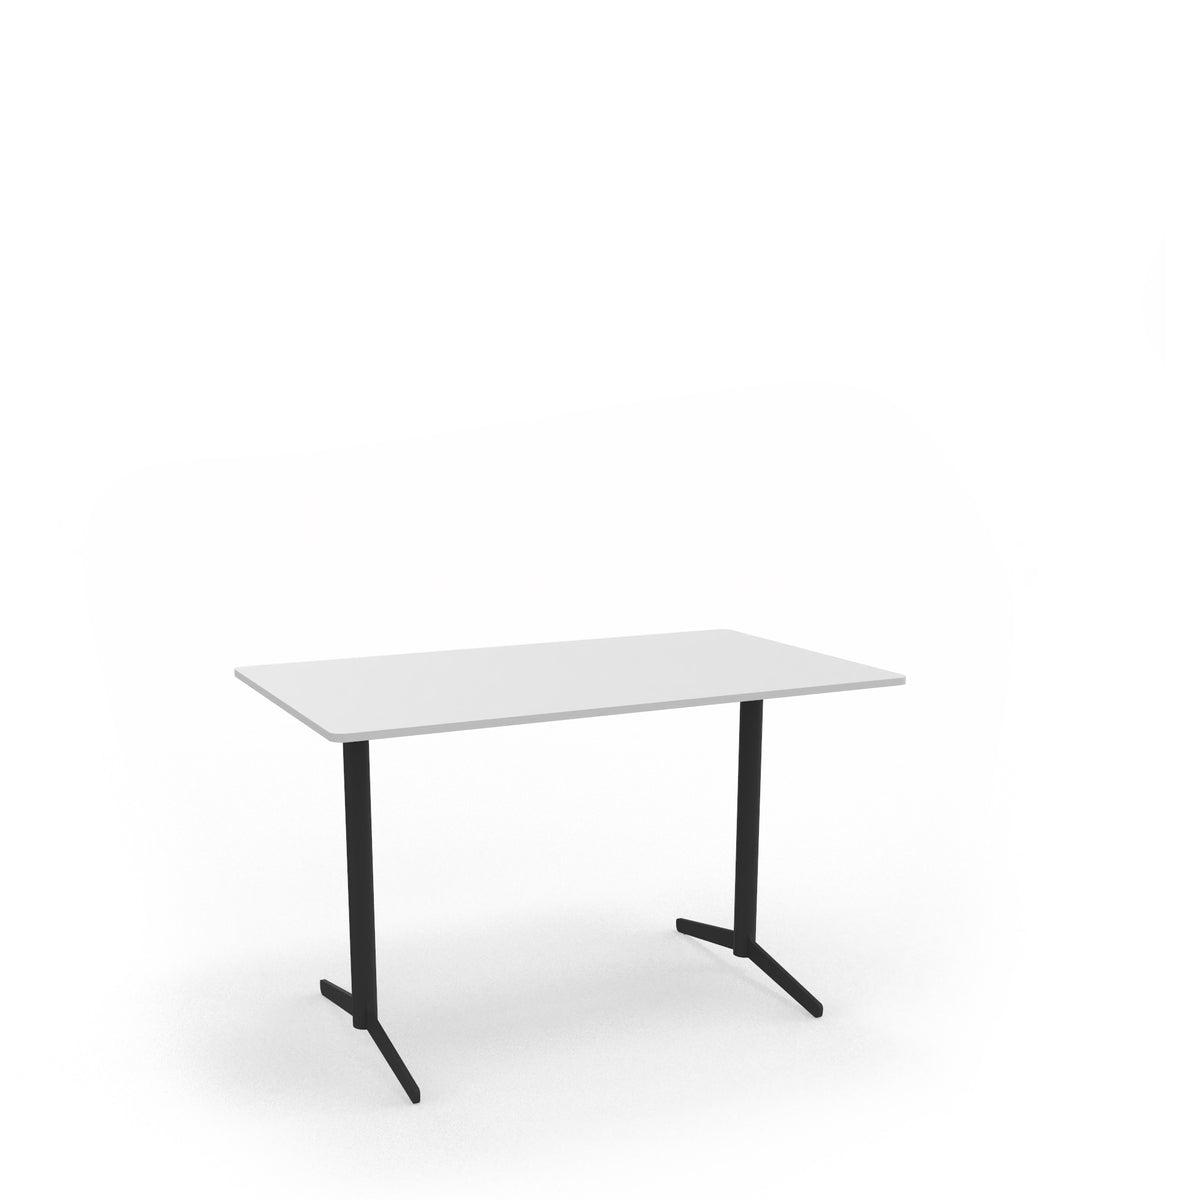 Edsbyn Office Feather Table White with Black Base